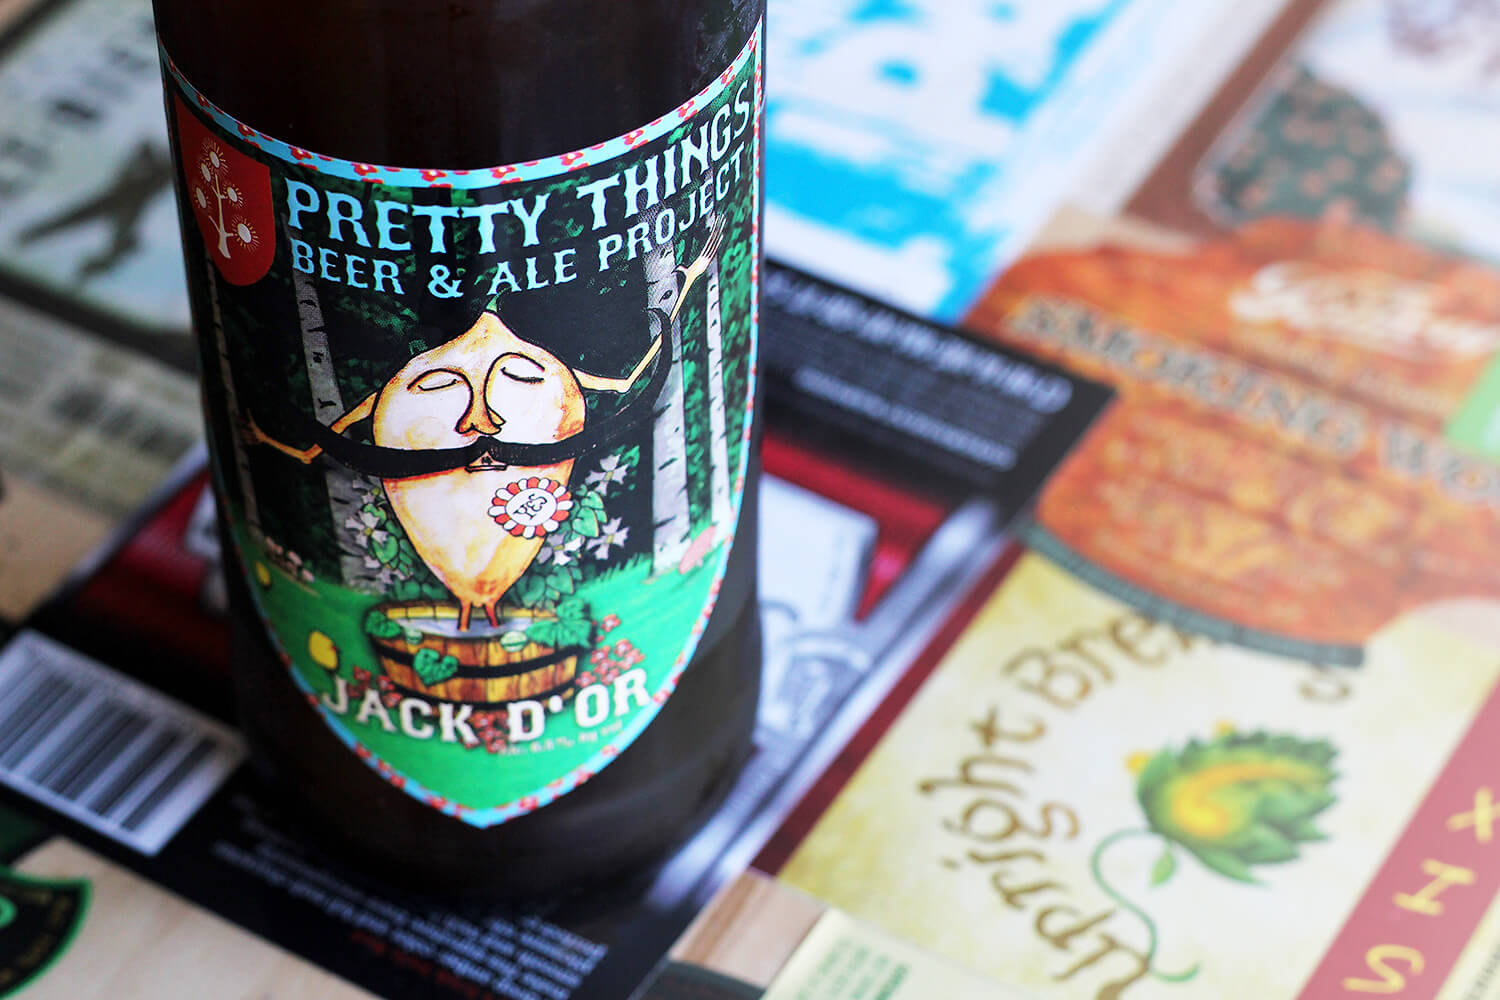 Pretty Things Beer And Ale Project — Jack D'Or